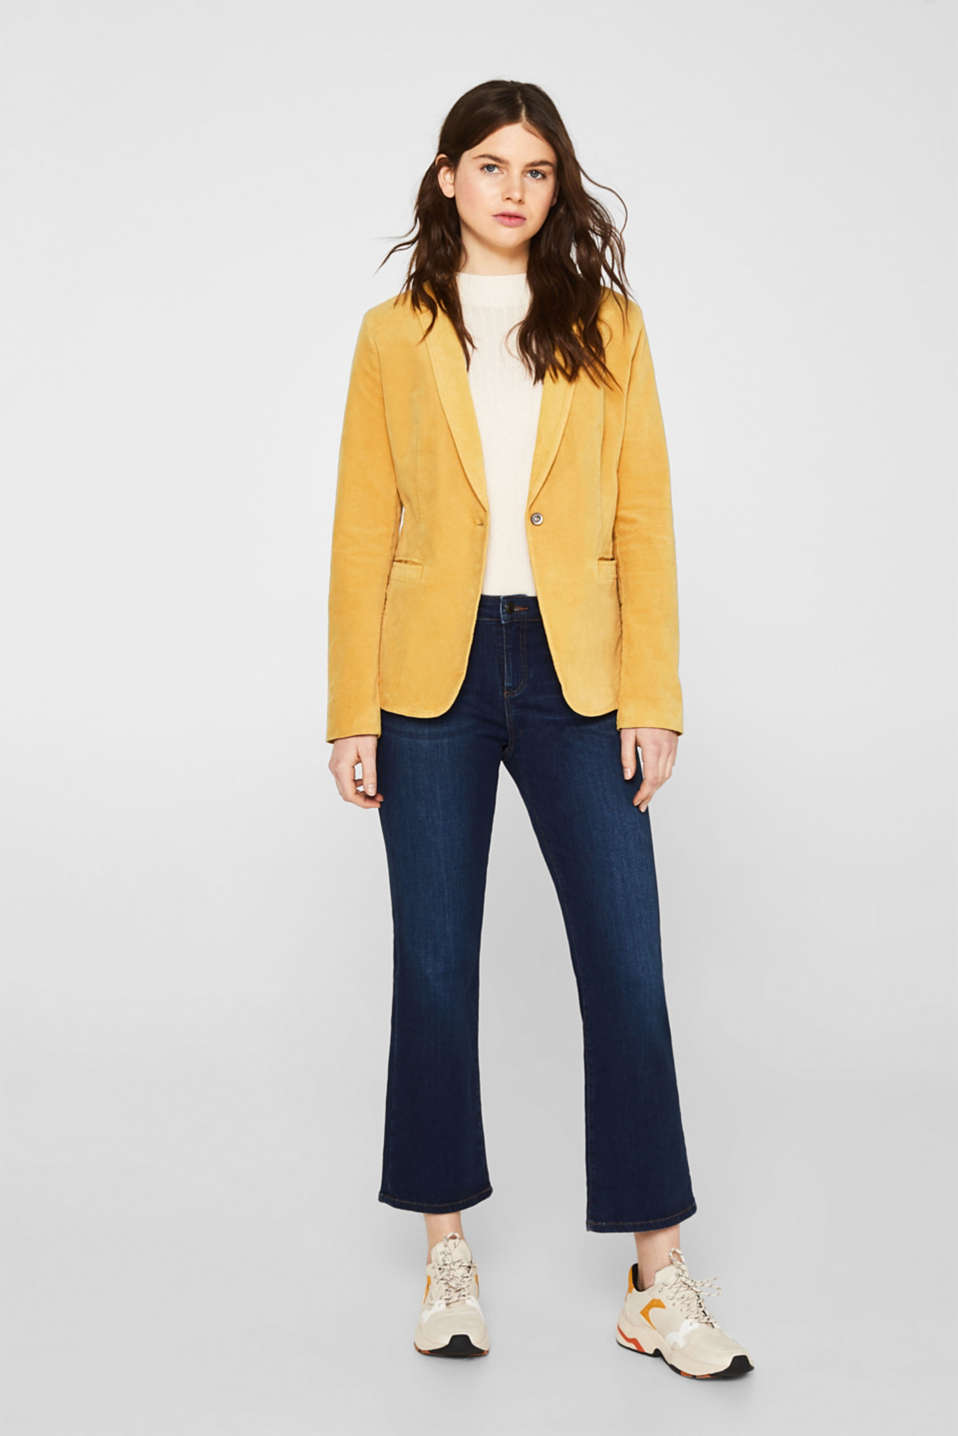 Velvet blazer with stretch for comfort, DUSTY YELLOW, detail image number 1